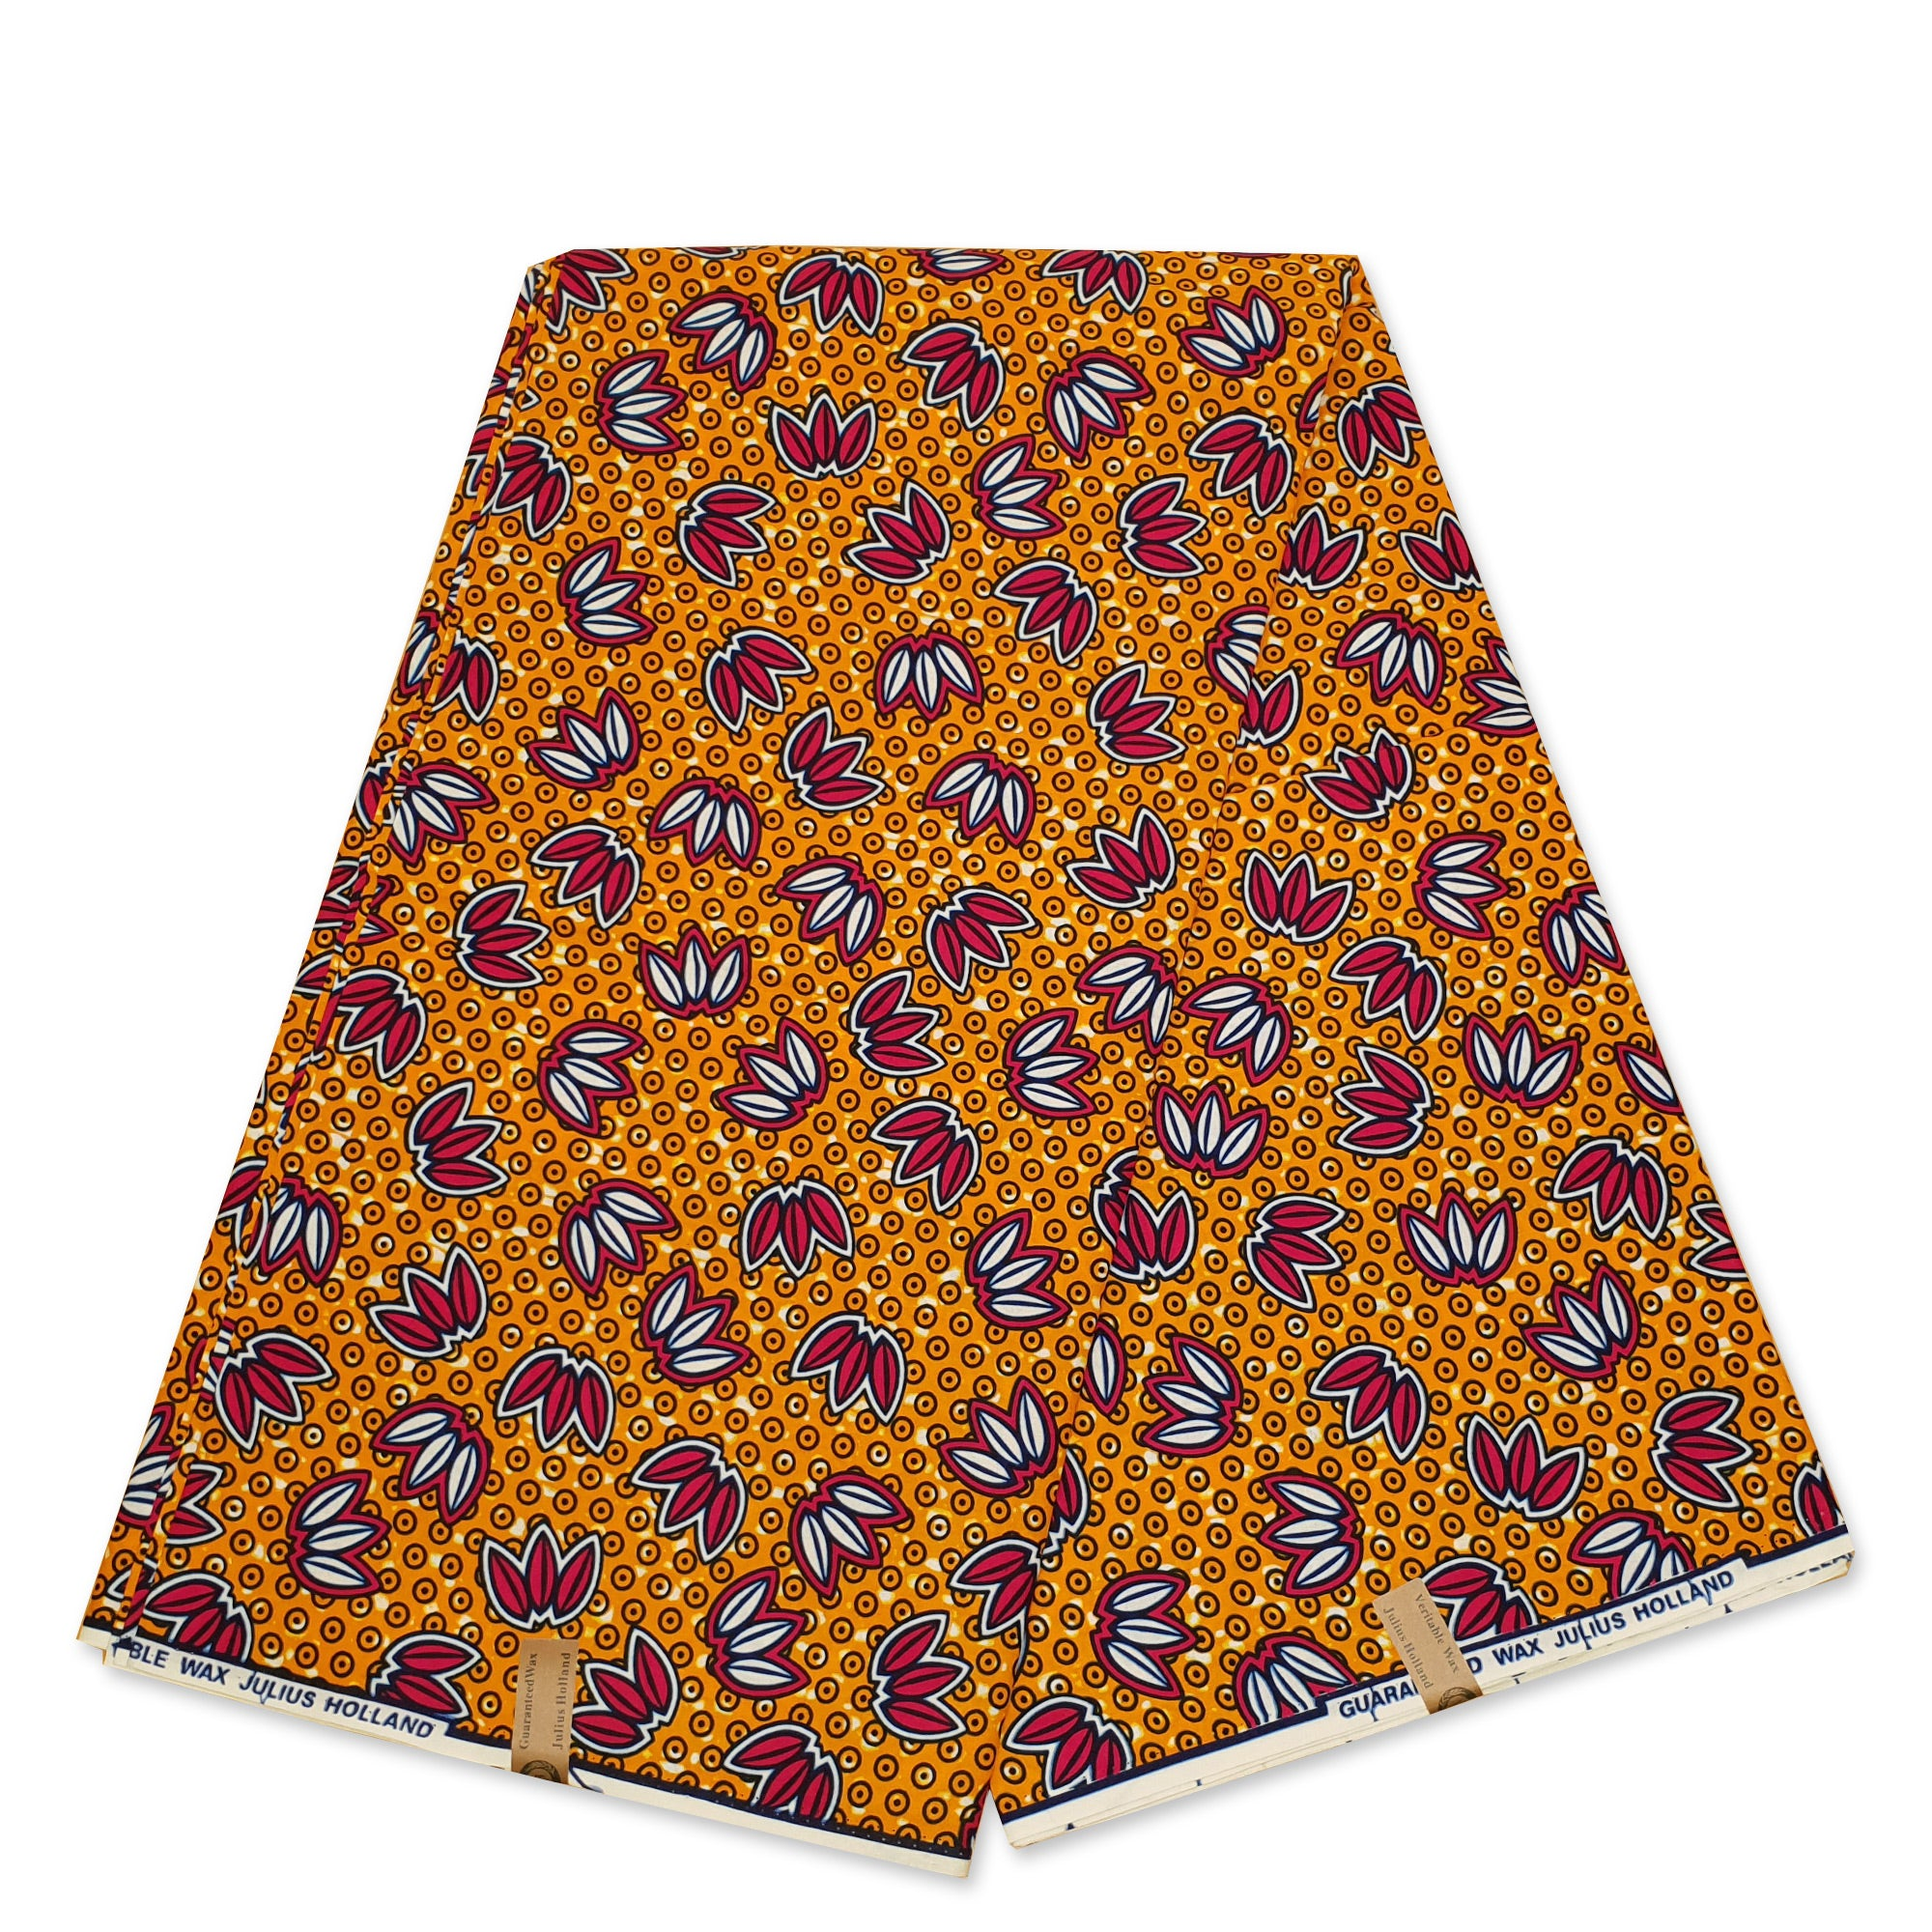 African Wax print fabric - Blue Yellow dotted circles - gold embellished - Brillant Platinum Edition